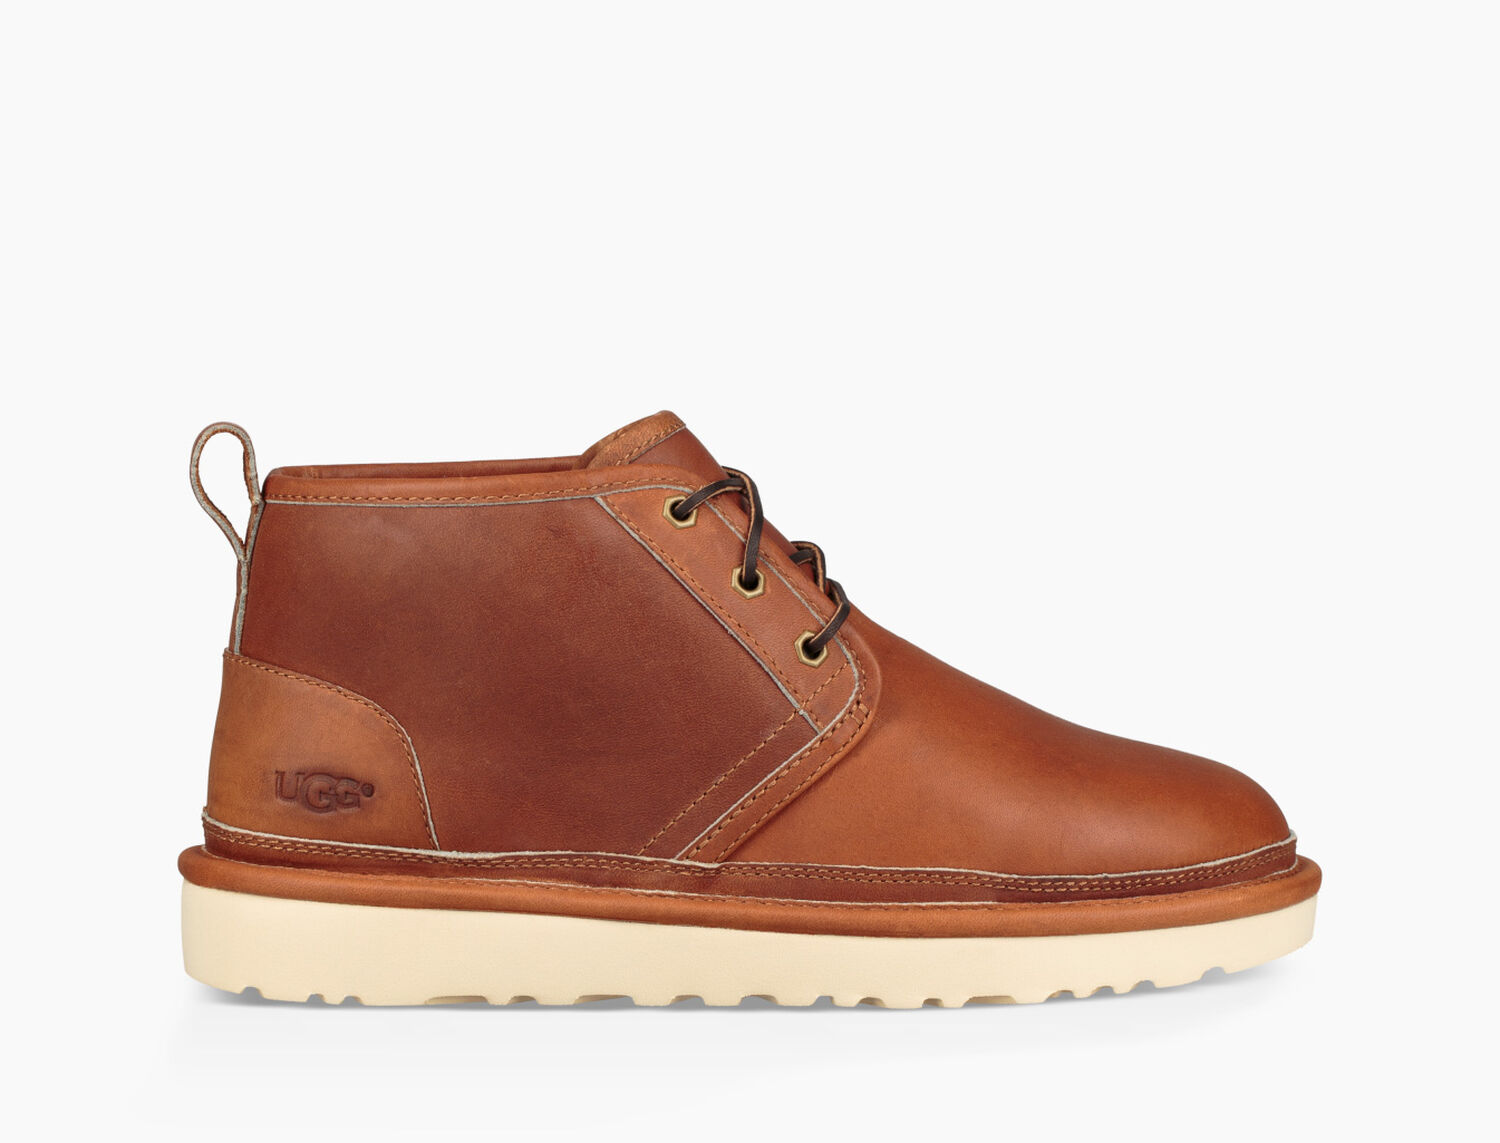 f2cc7380d1a Men's Share this product Neumel Horween Boot